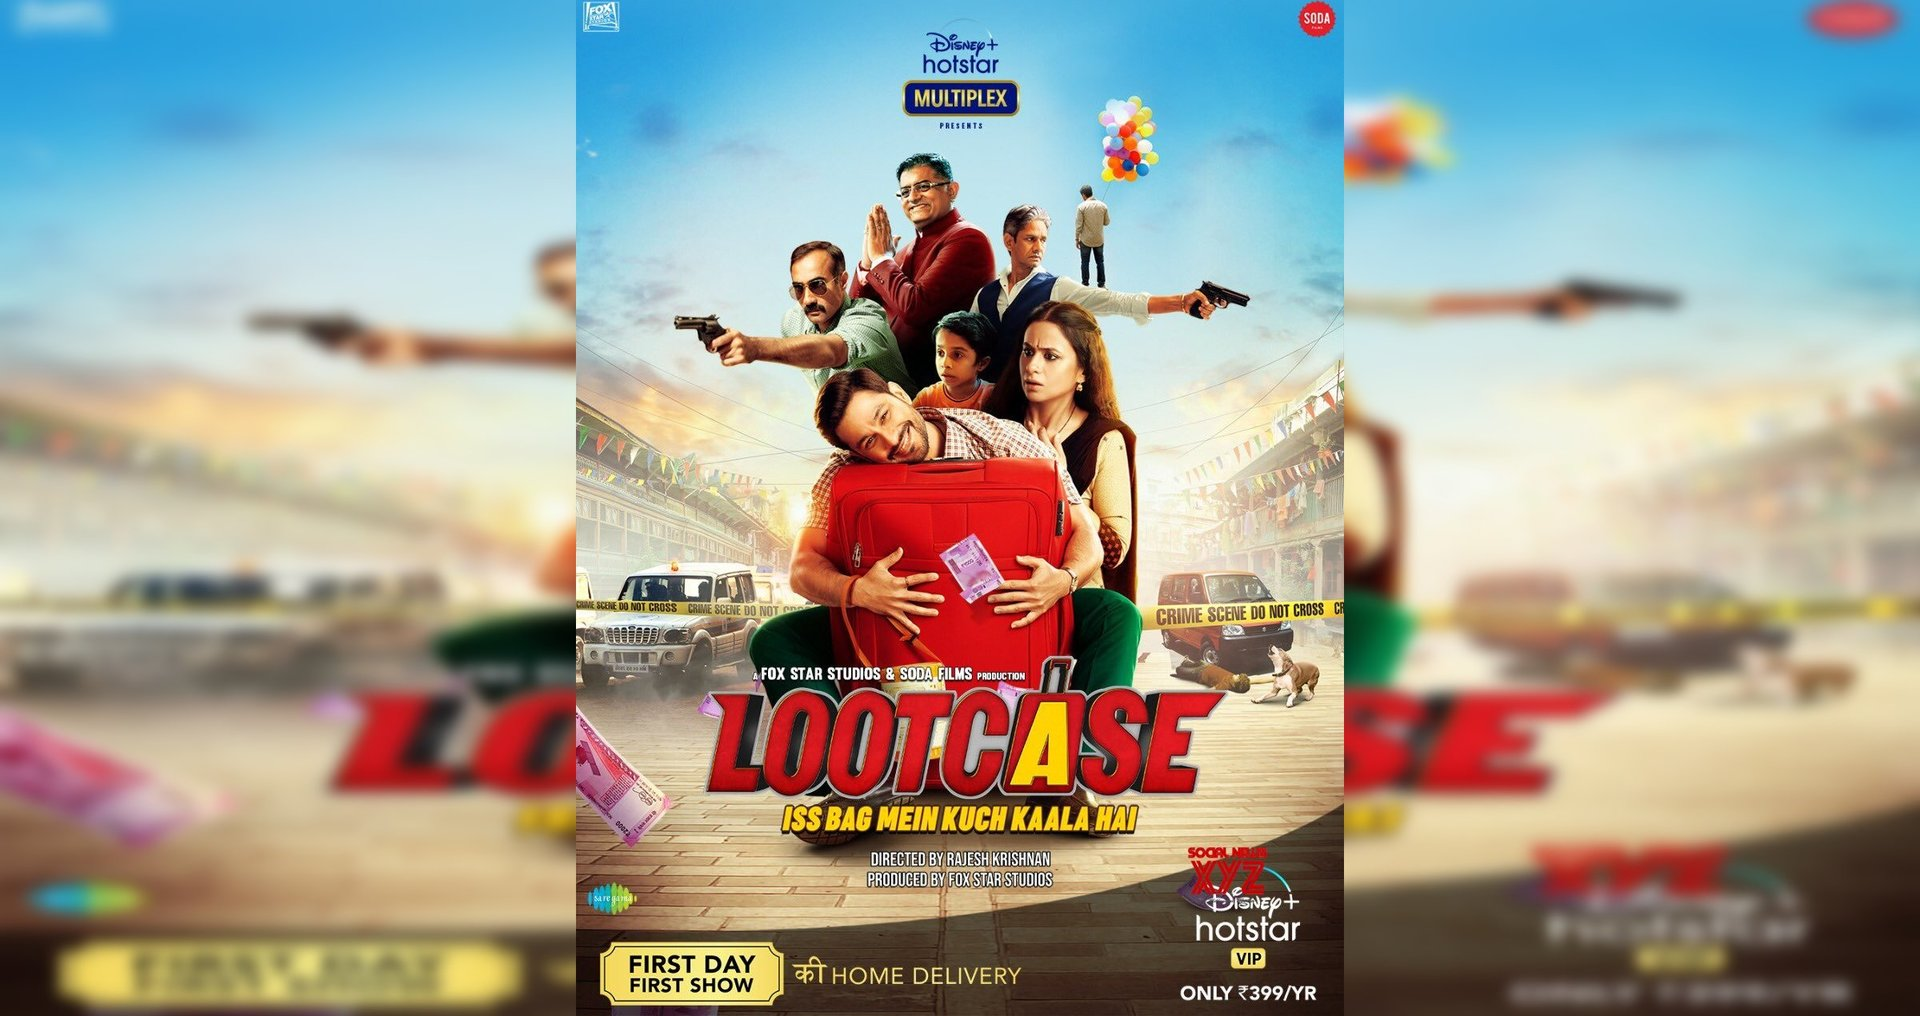 Lootcase Review: Kunal Khemu's Lootcase is Mostly WellPaced and Manages to Stay Amusing Despite a Thin Plot (Rating: ***)